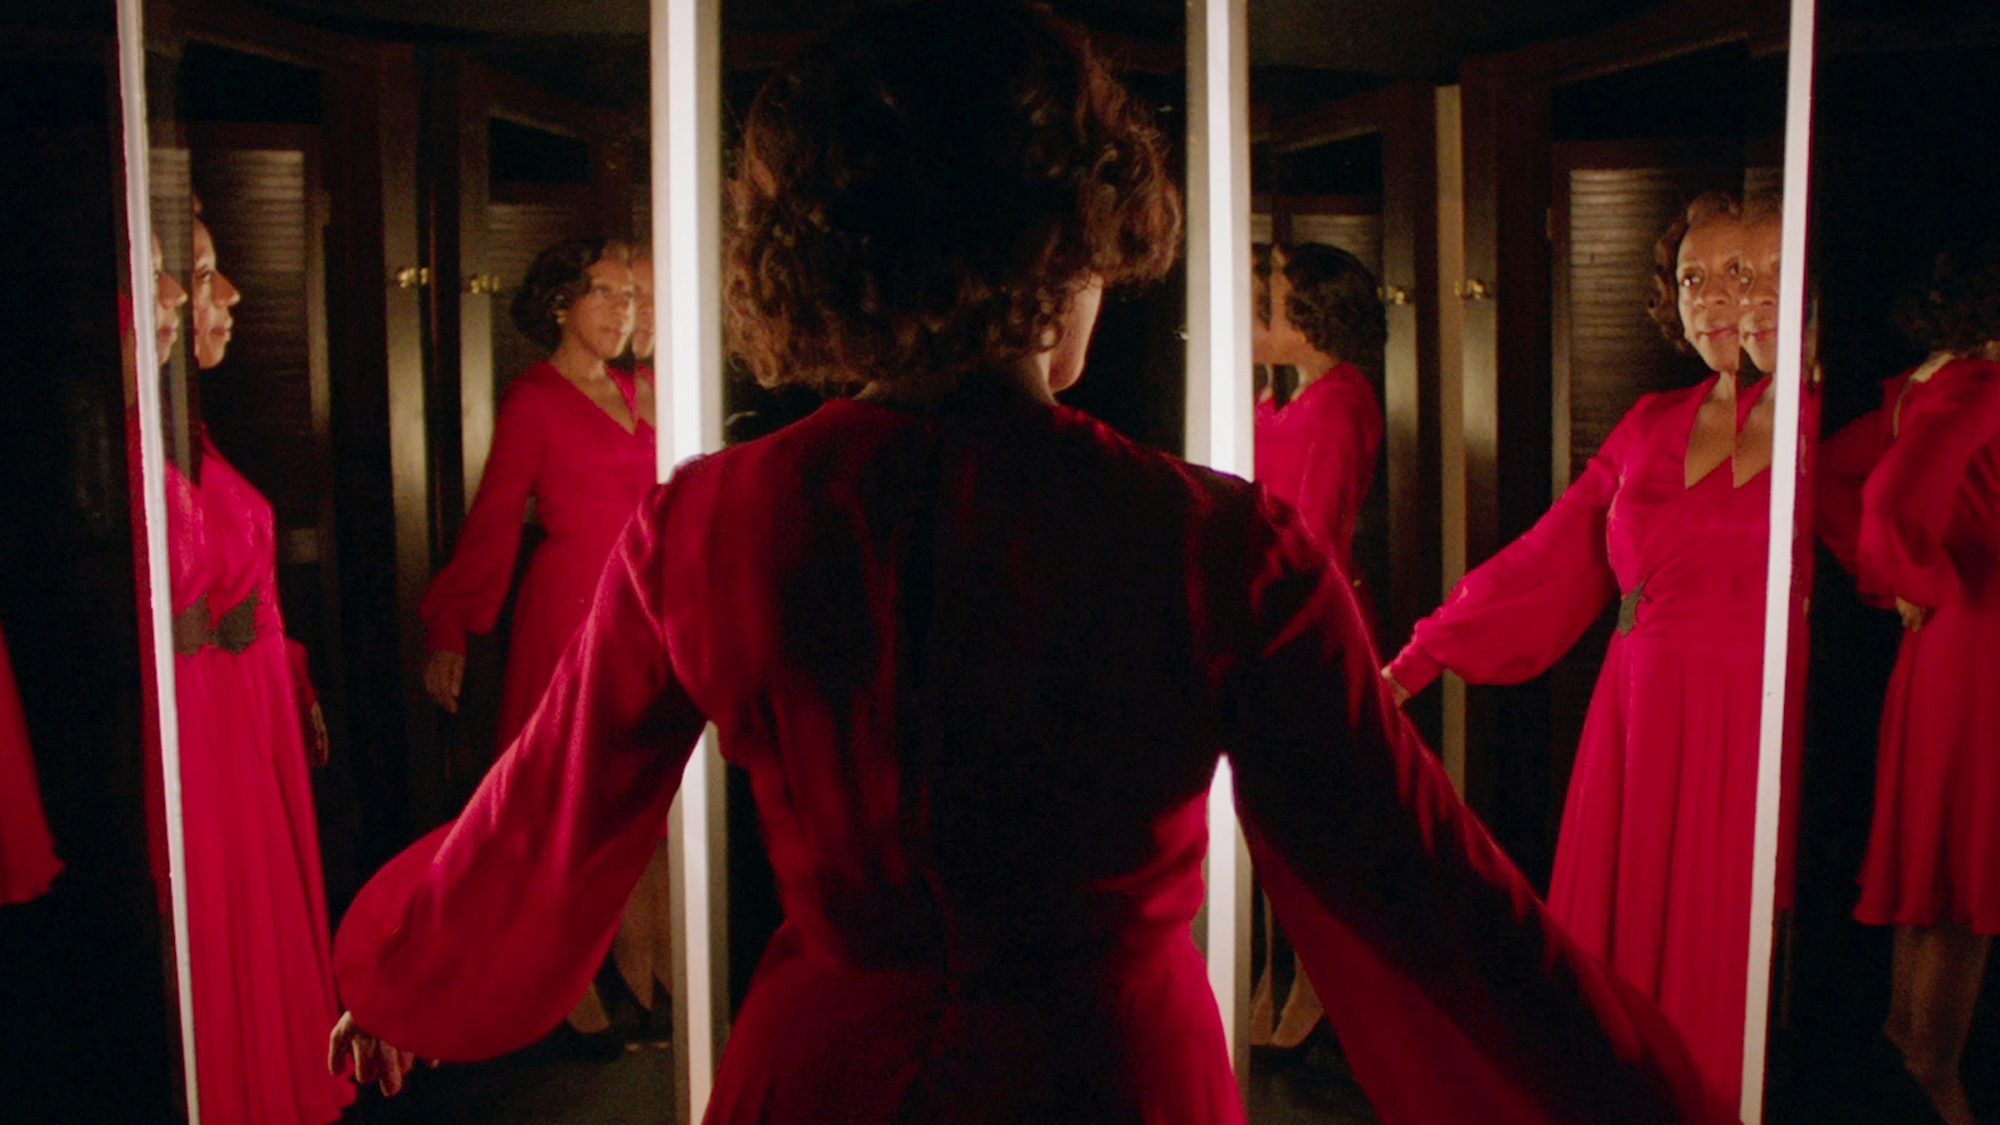 Halloween film events in London: IN FABRIC, part of POSSESSED at Catford Mews (26 OCT).